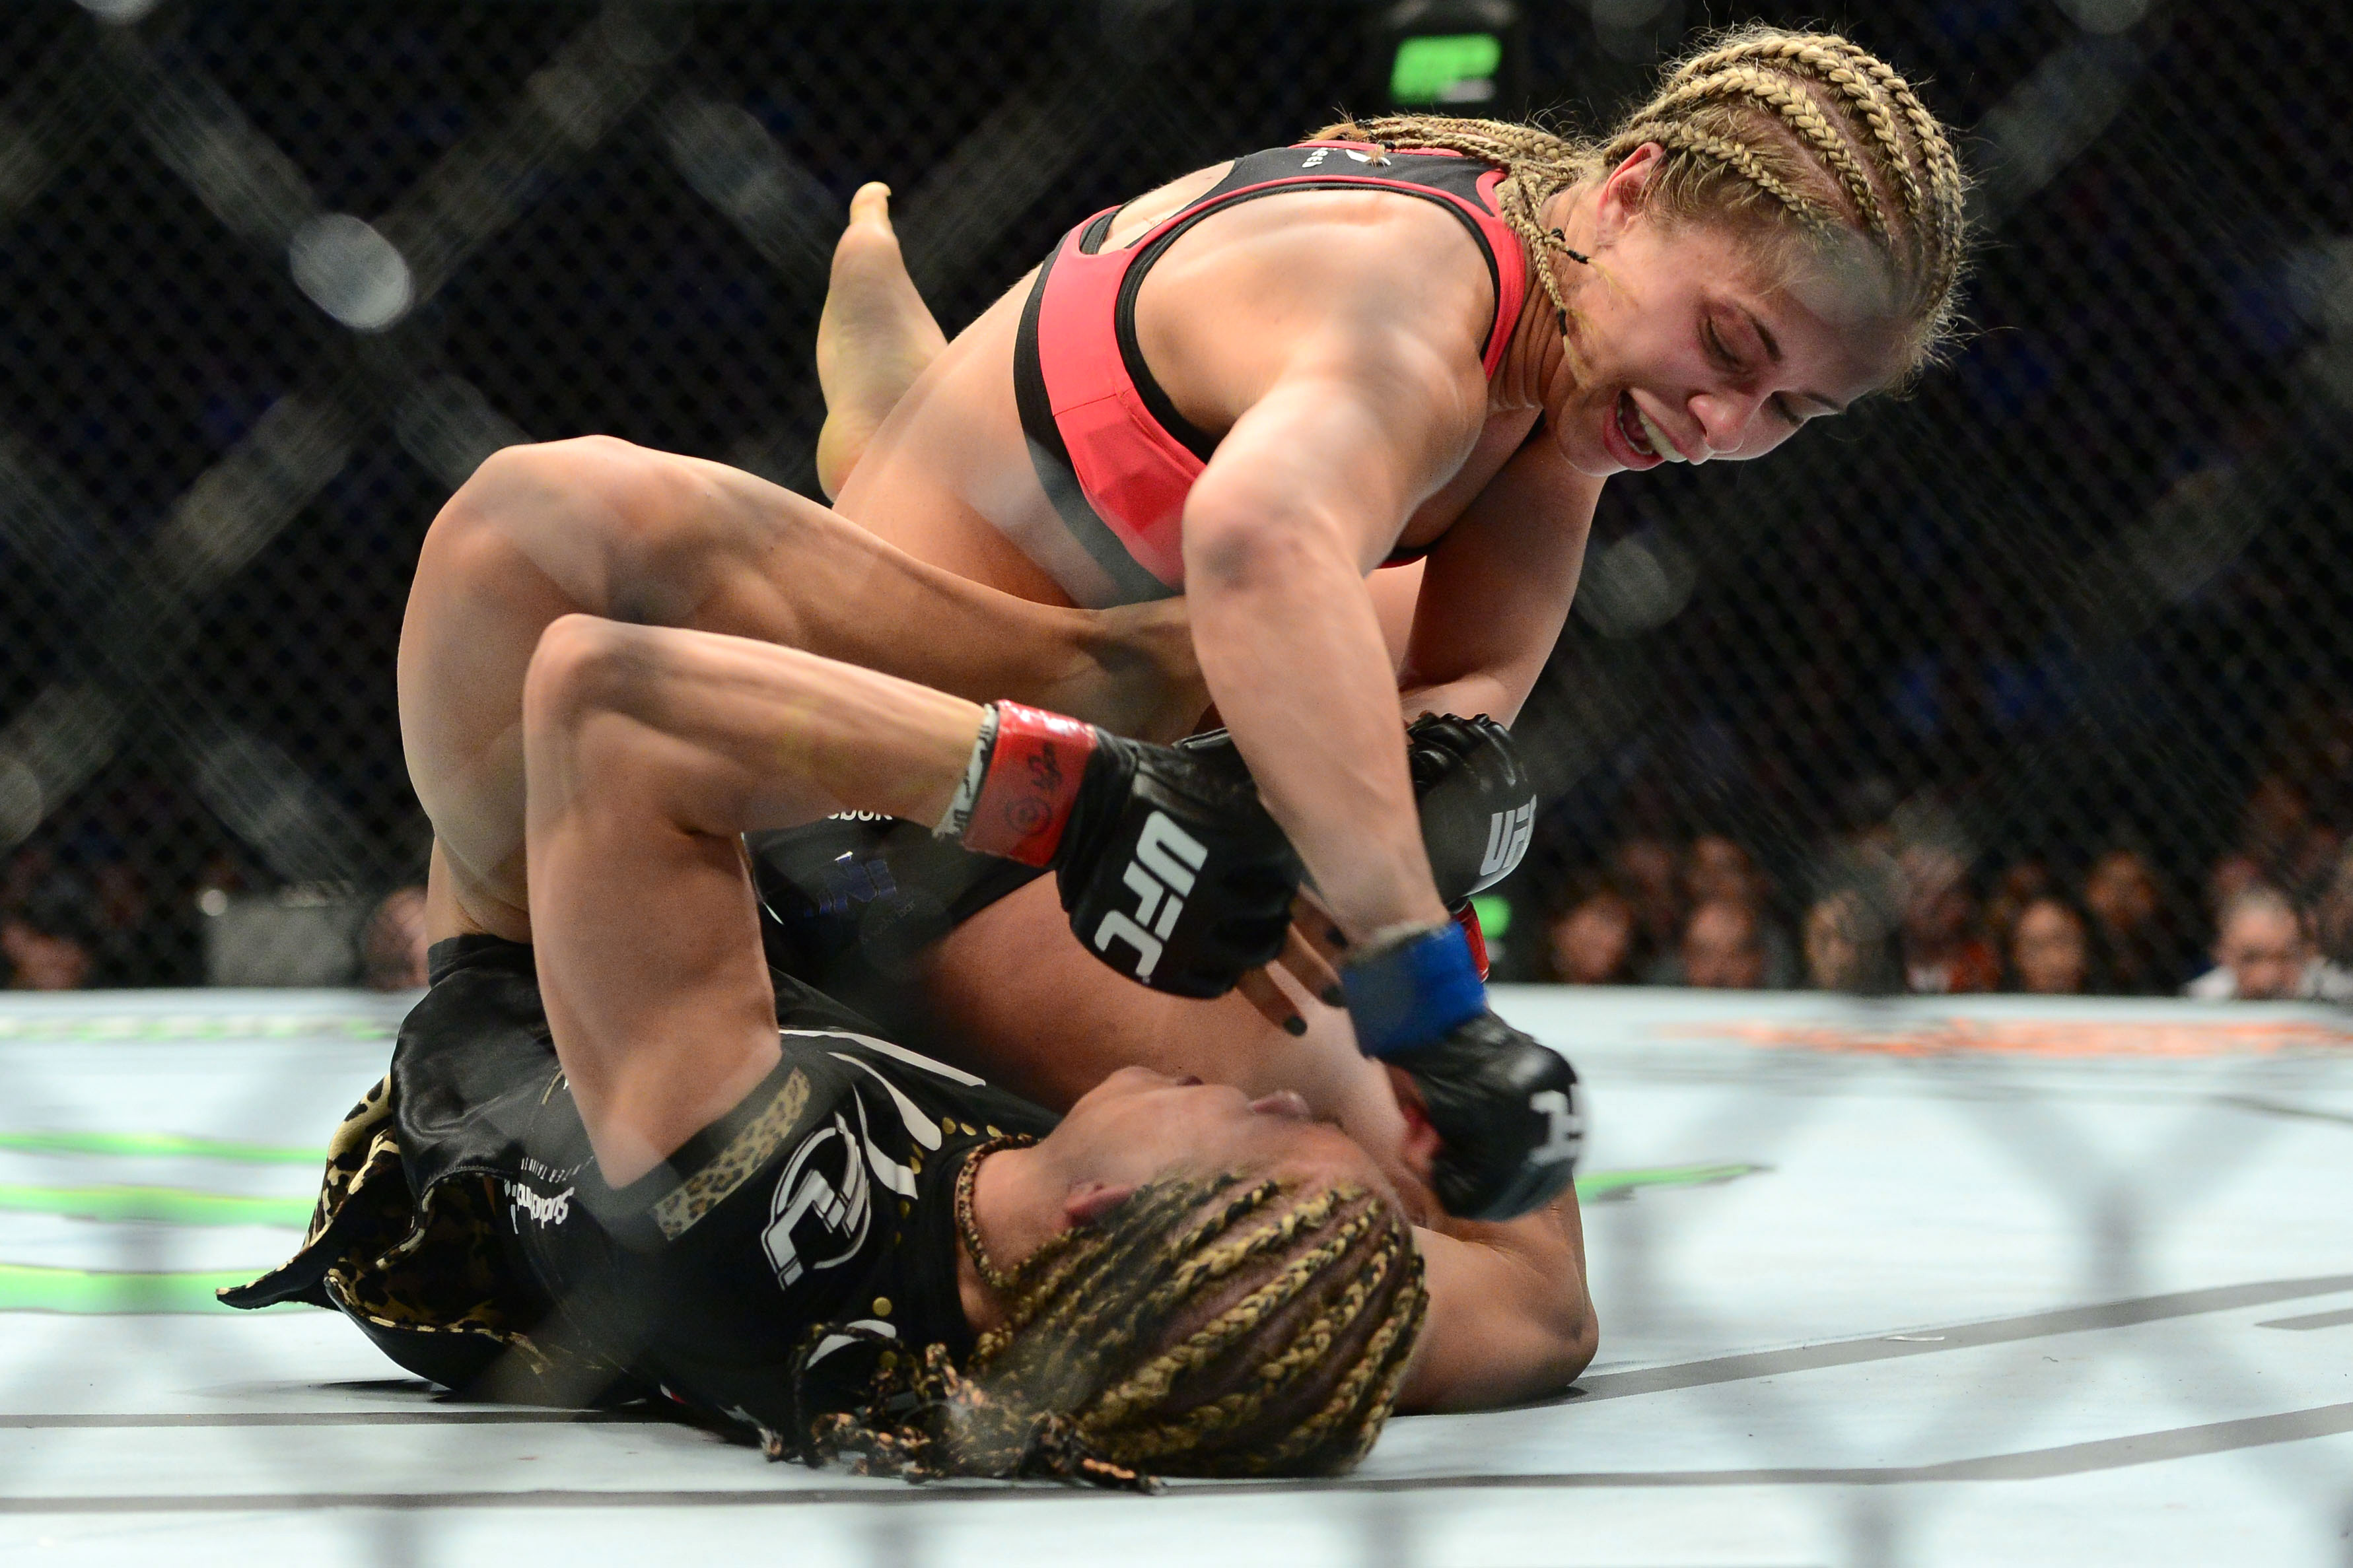 Paige VanZant picked up a big win over Felice Herrig at UFC on FOX 15 on Saturday.